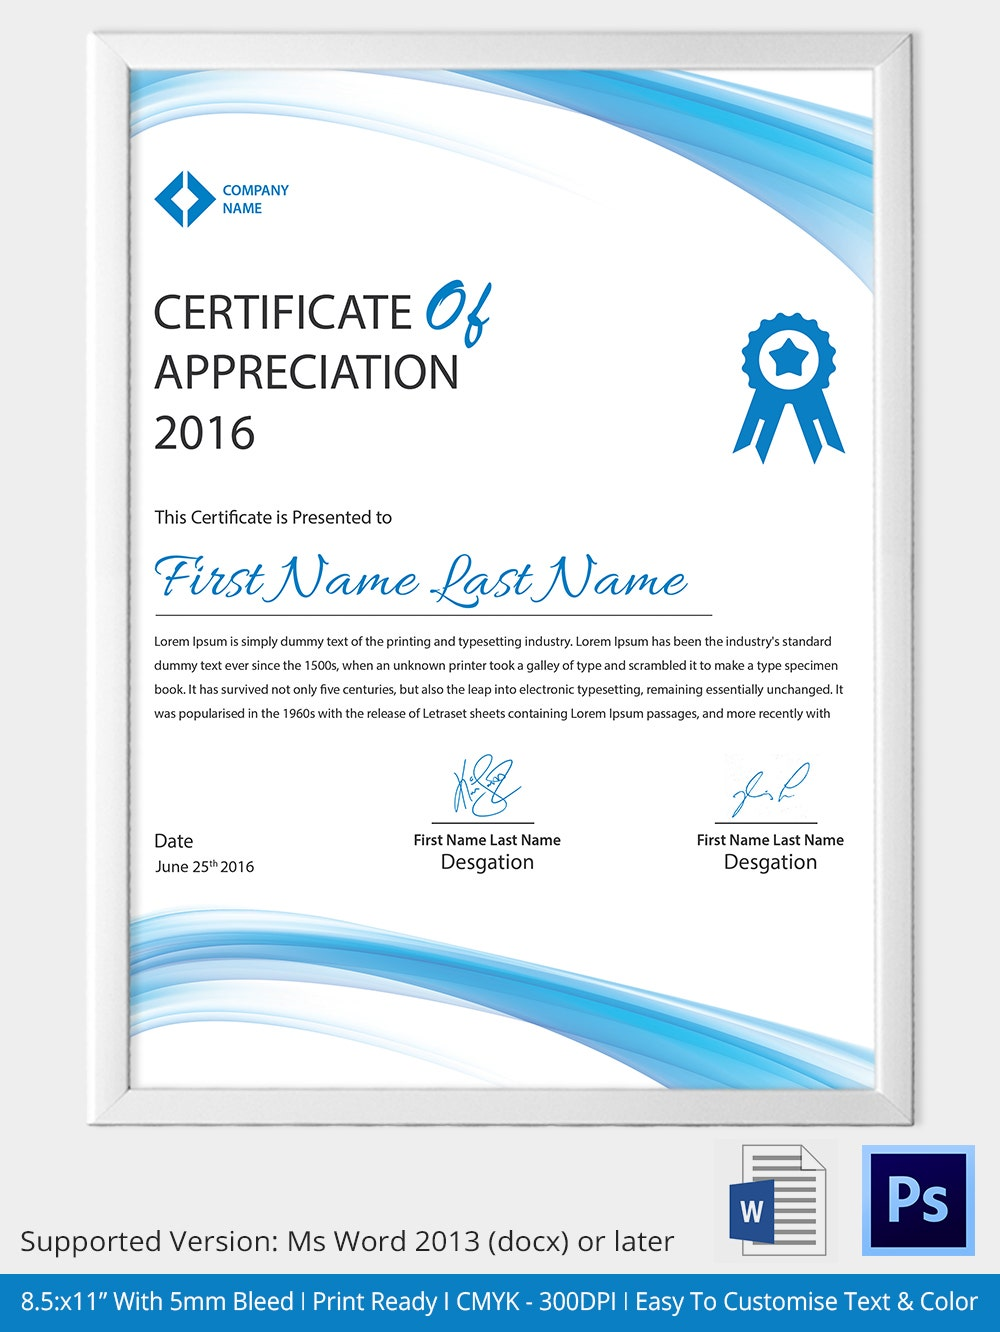 50 creative custom certificate design templates free for Certificate design template